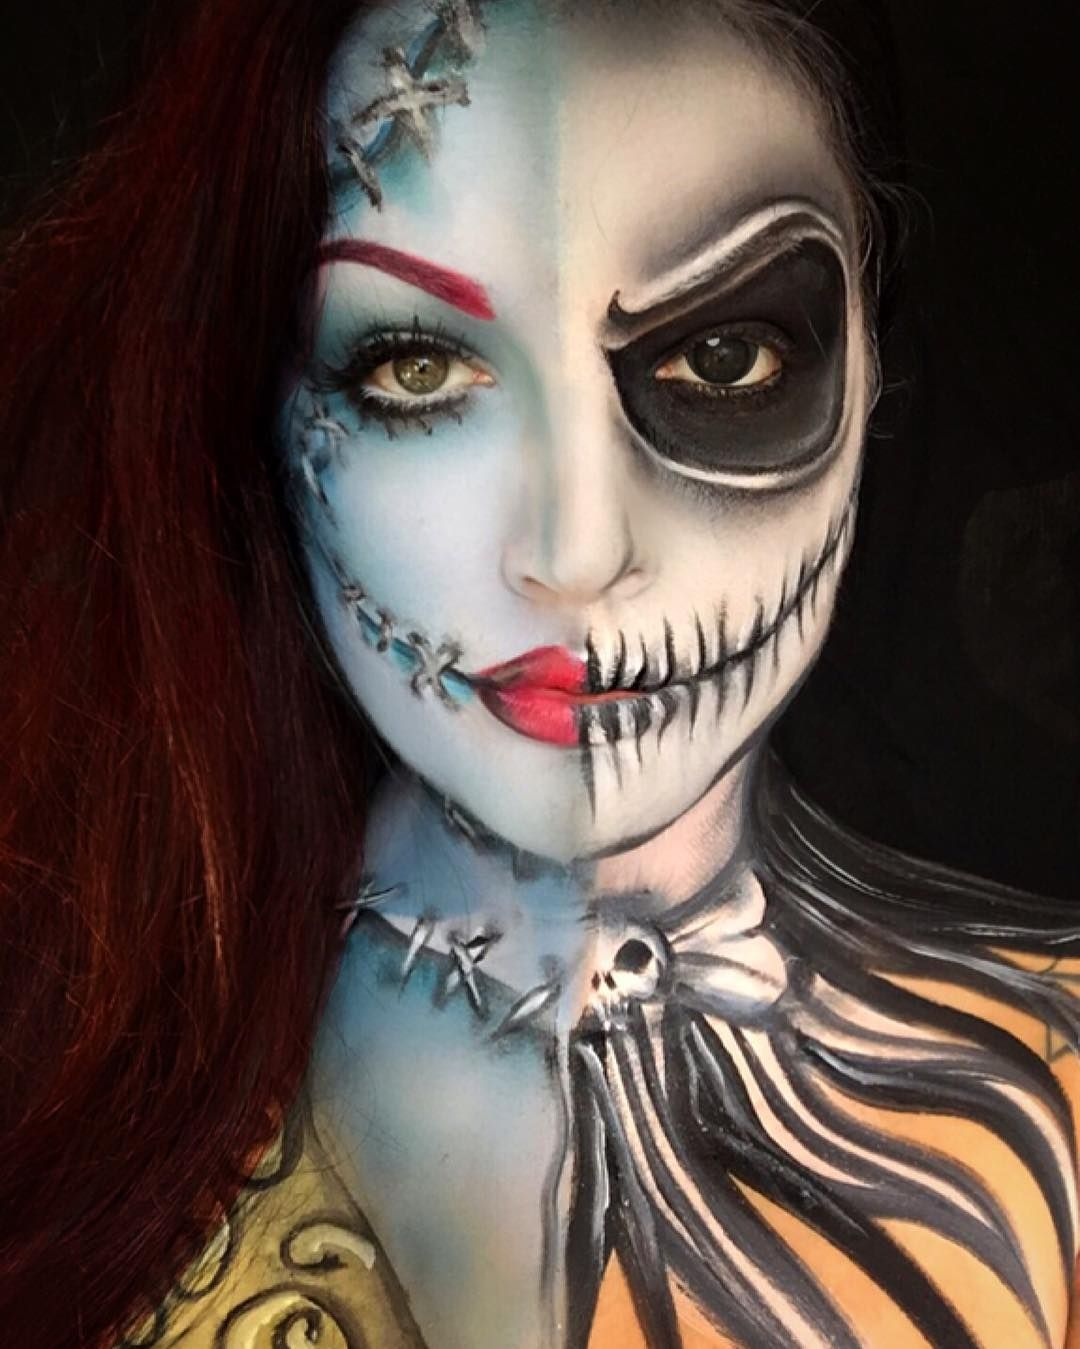 This Makeup Artist Gives Your Favorite Disney Characters a